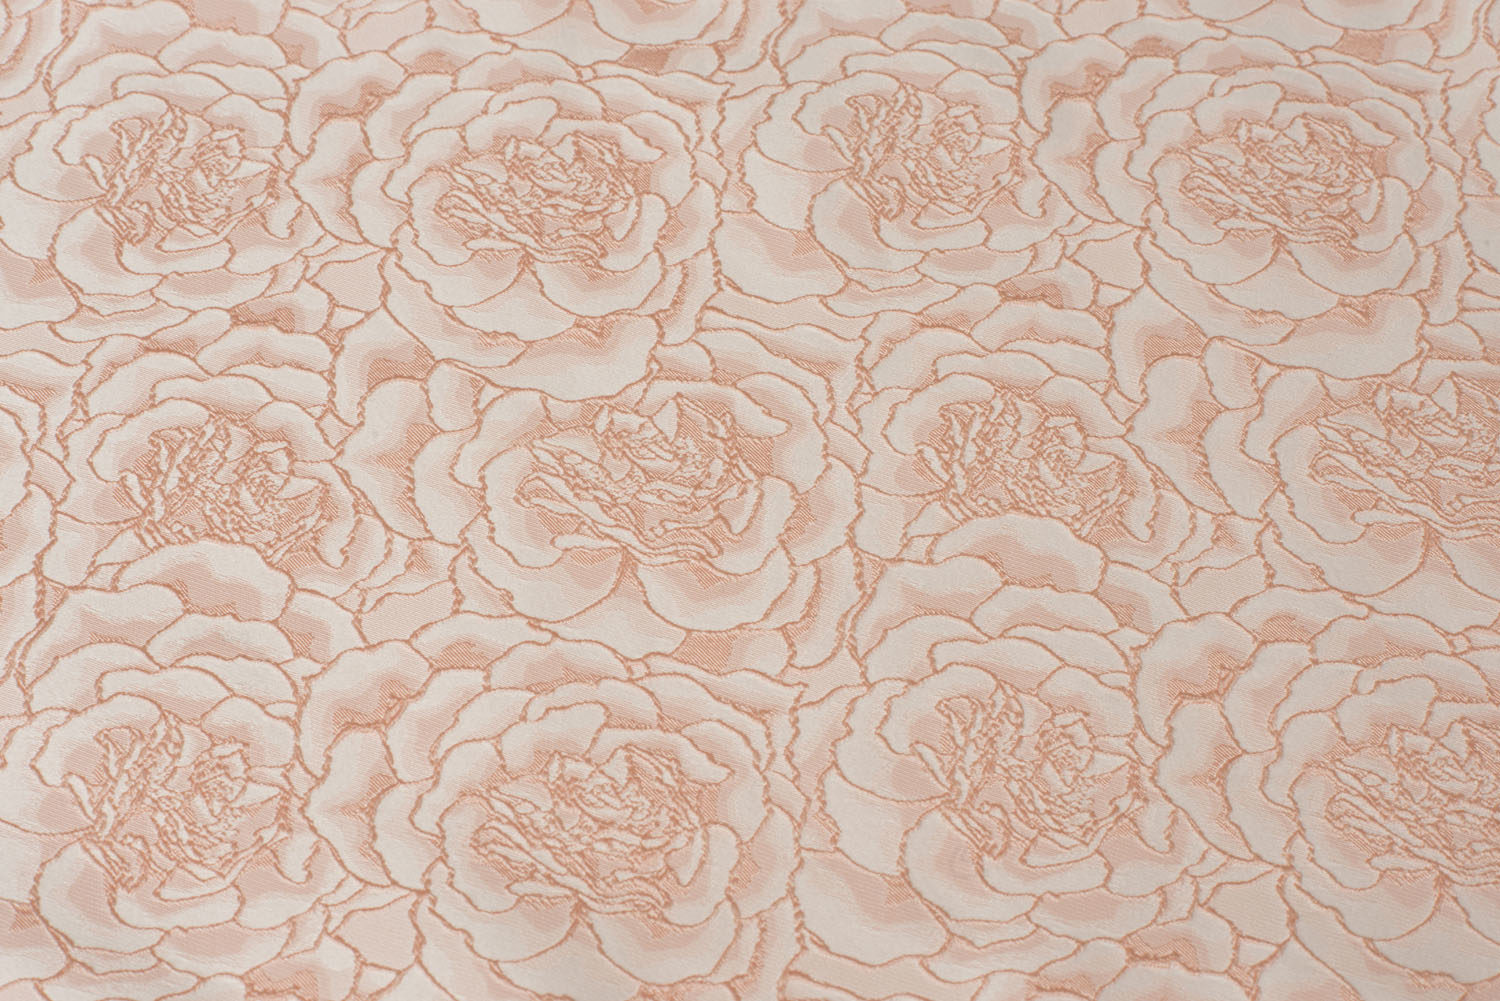 Textured Pink Rose Pattern Velvet Border With Cording Banquet Table Runner